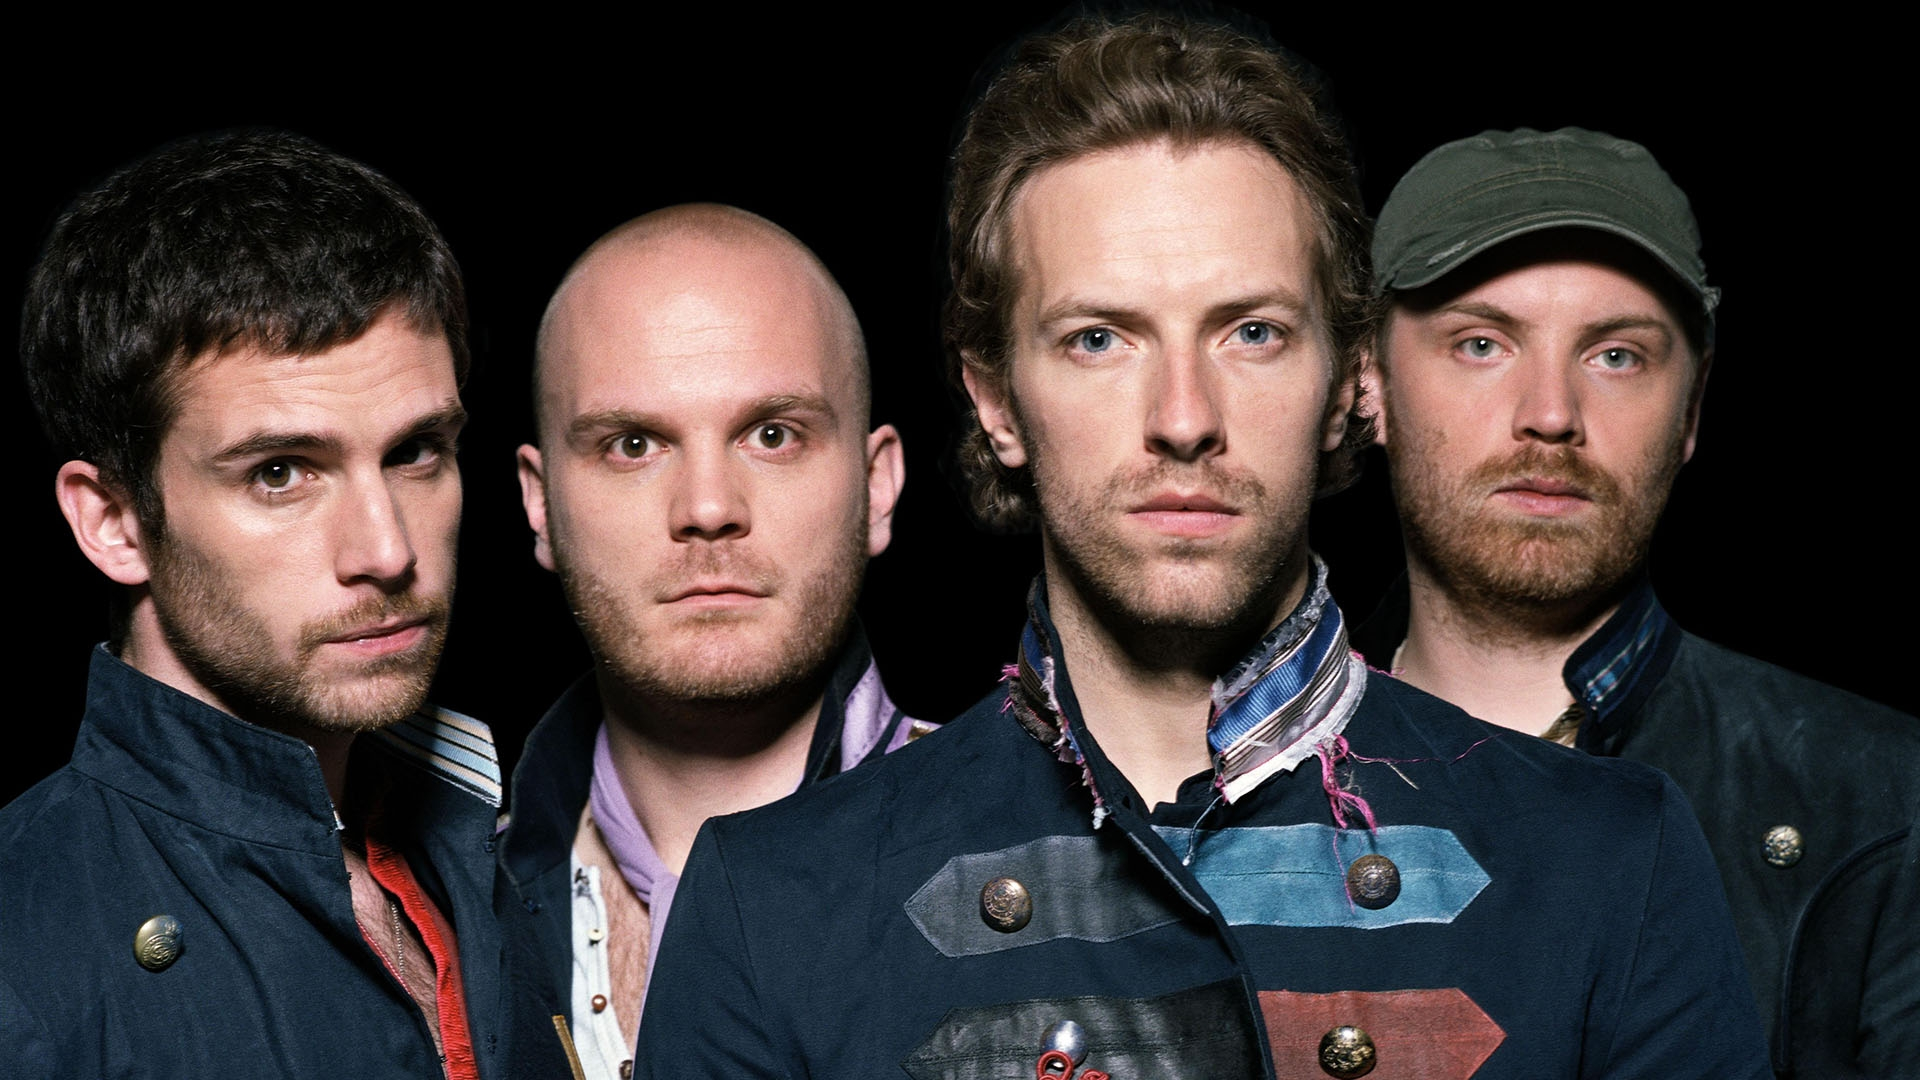 Download wallpaper 1920x1080 coldplay bald bristle outdoor band get the latest coldplay bald bristle news pictures and videos and learn all about coldplay bald bristle from wallpapers4u your wallpaper news voltagebd Gallery